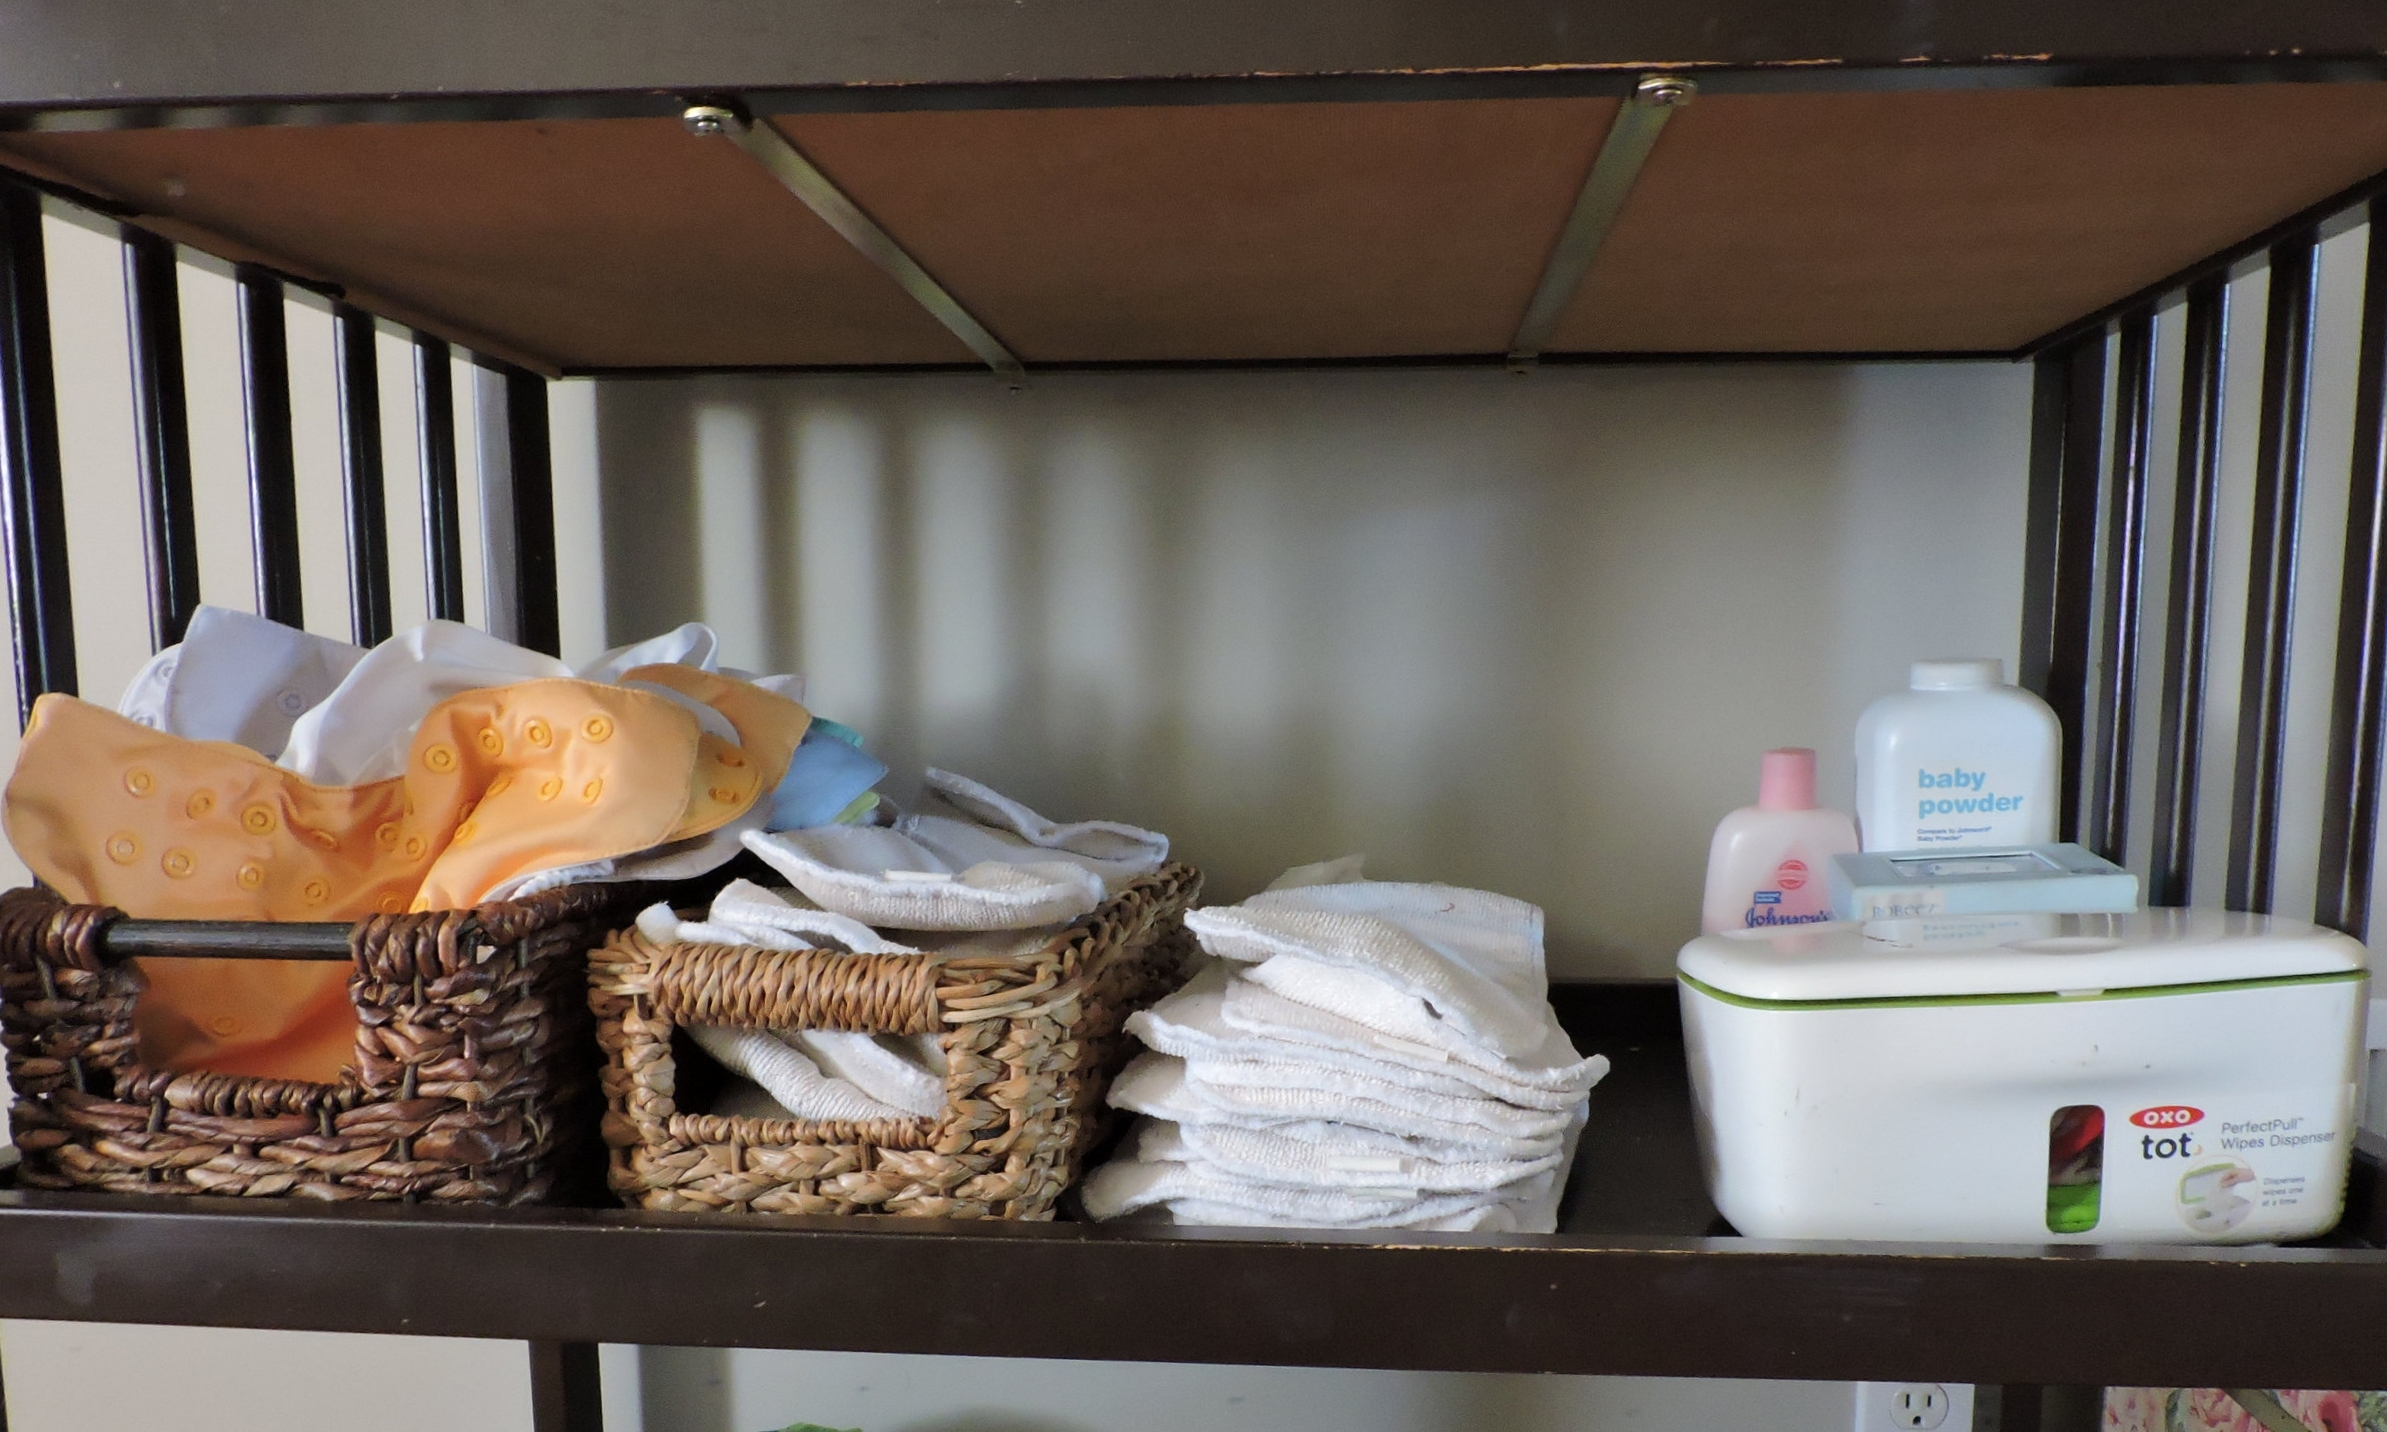 Having an efficient and attractive place for keeping the diapers is a huge plus.